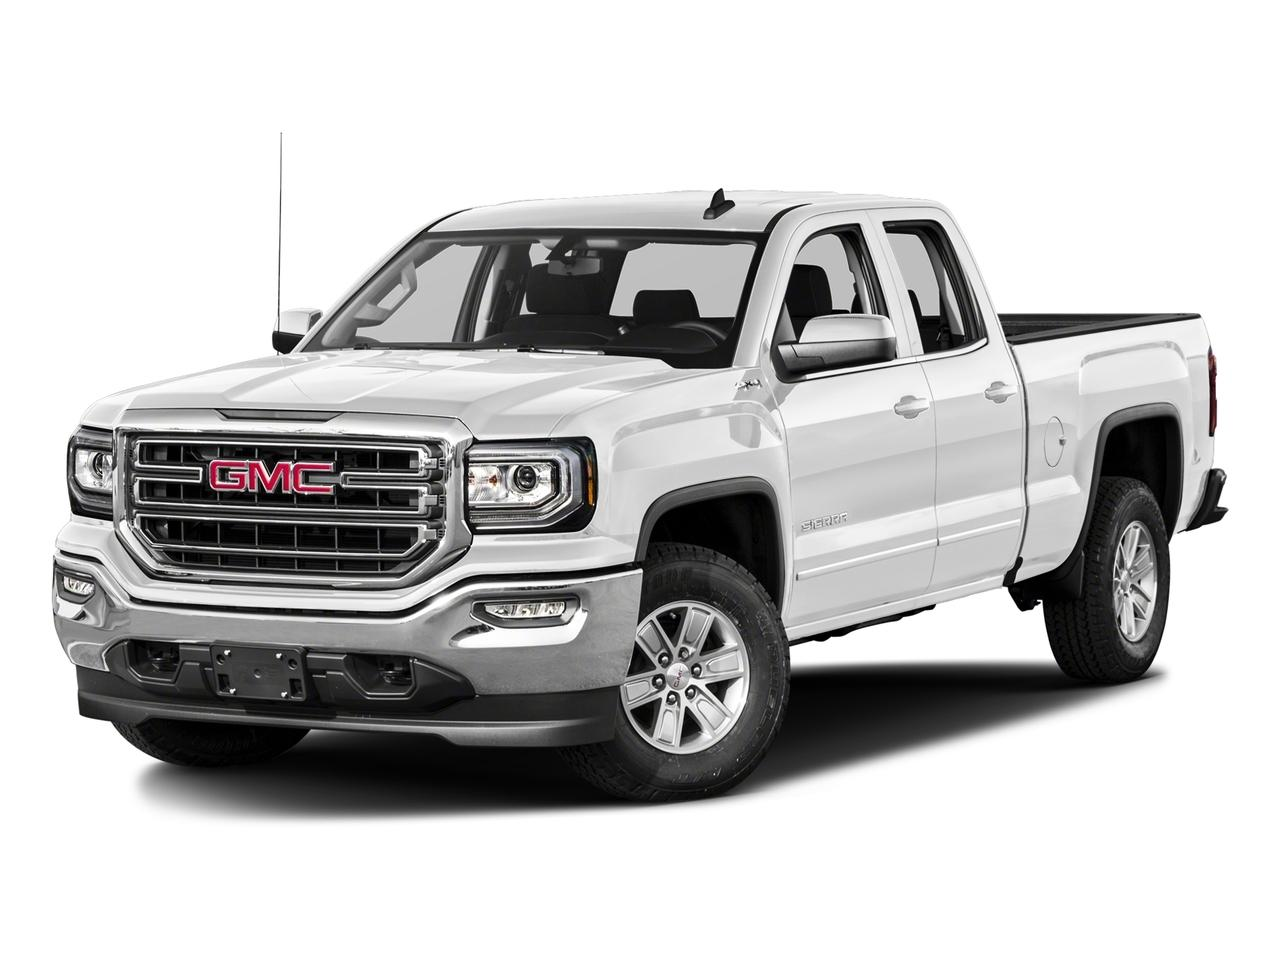 2018 GMC Sierra 1500 Vehicle Photo in Owensboro, KY 42303